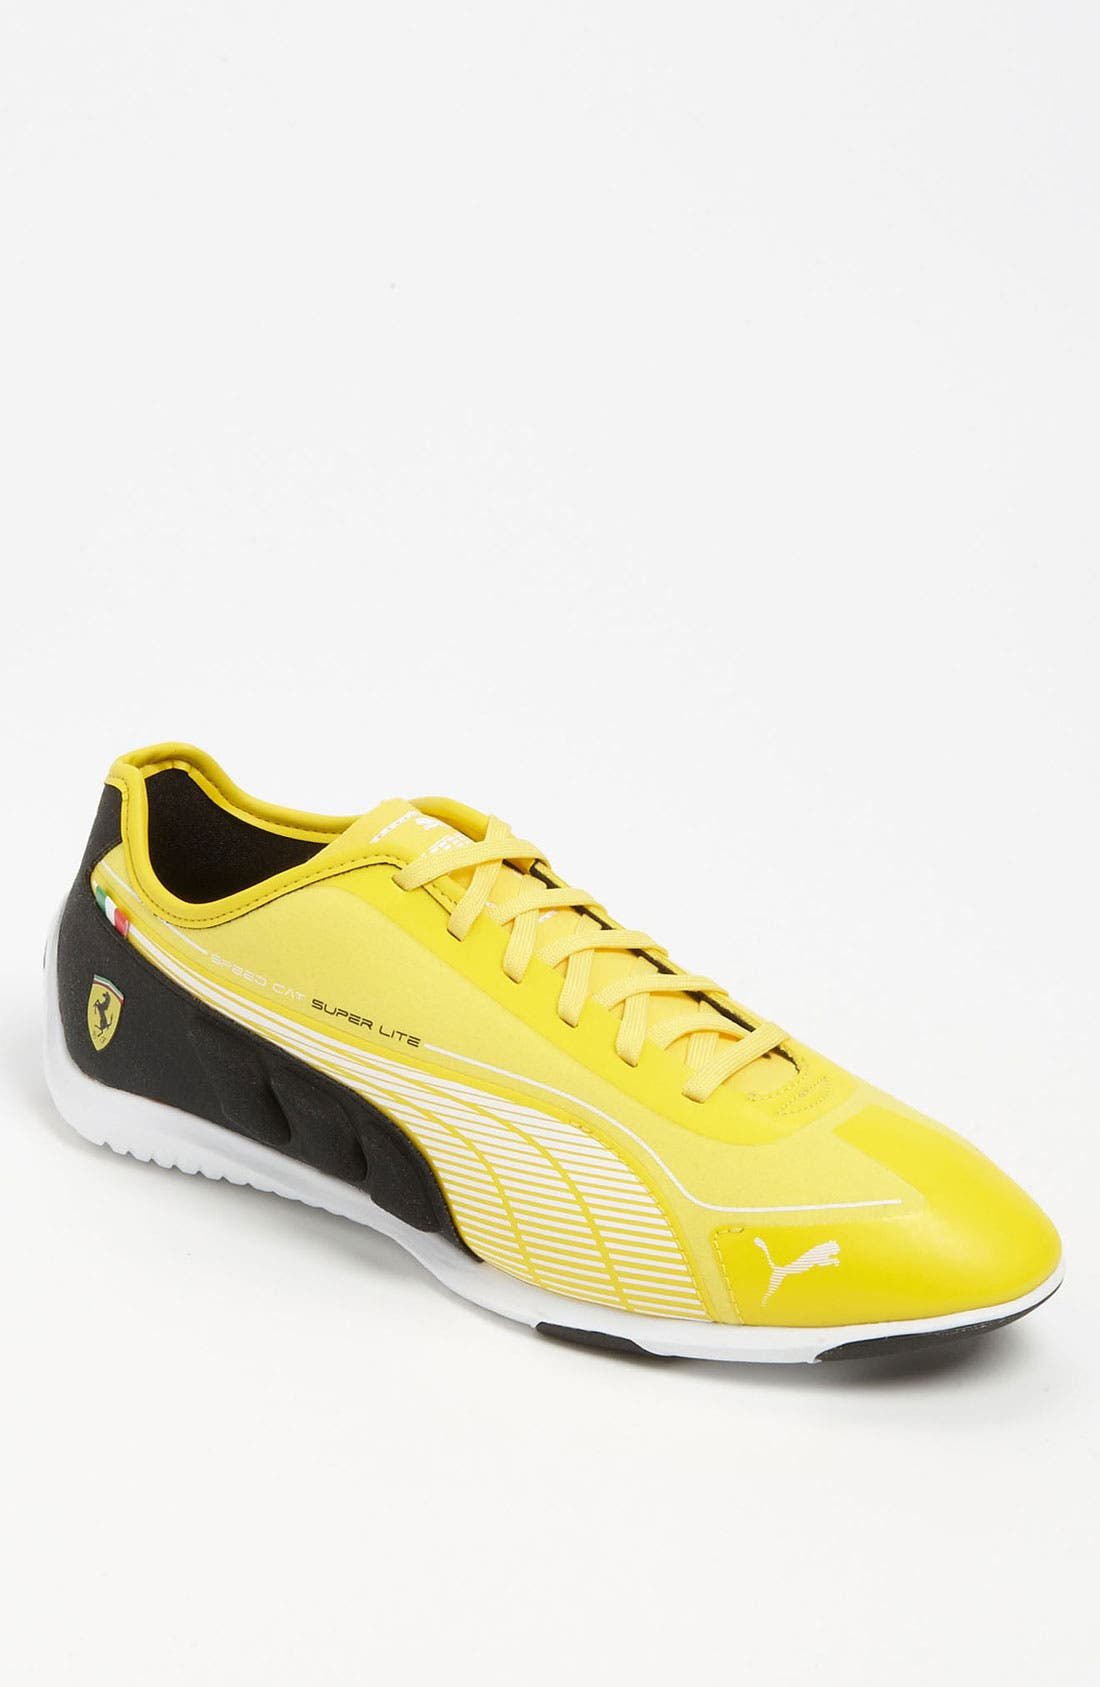 Main Image - PUMA 'Ferrari Speed Cat Super Lite' Sneaker (Men)